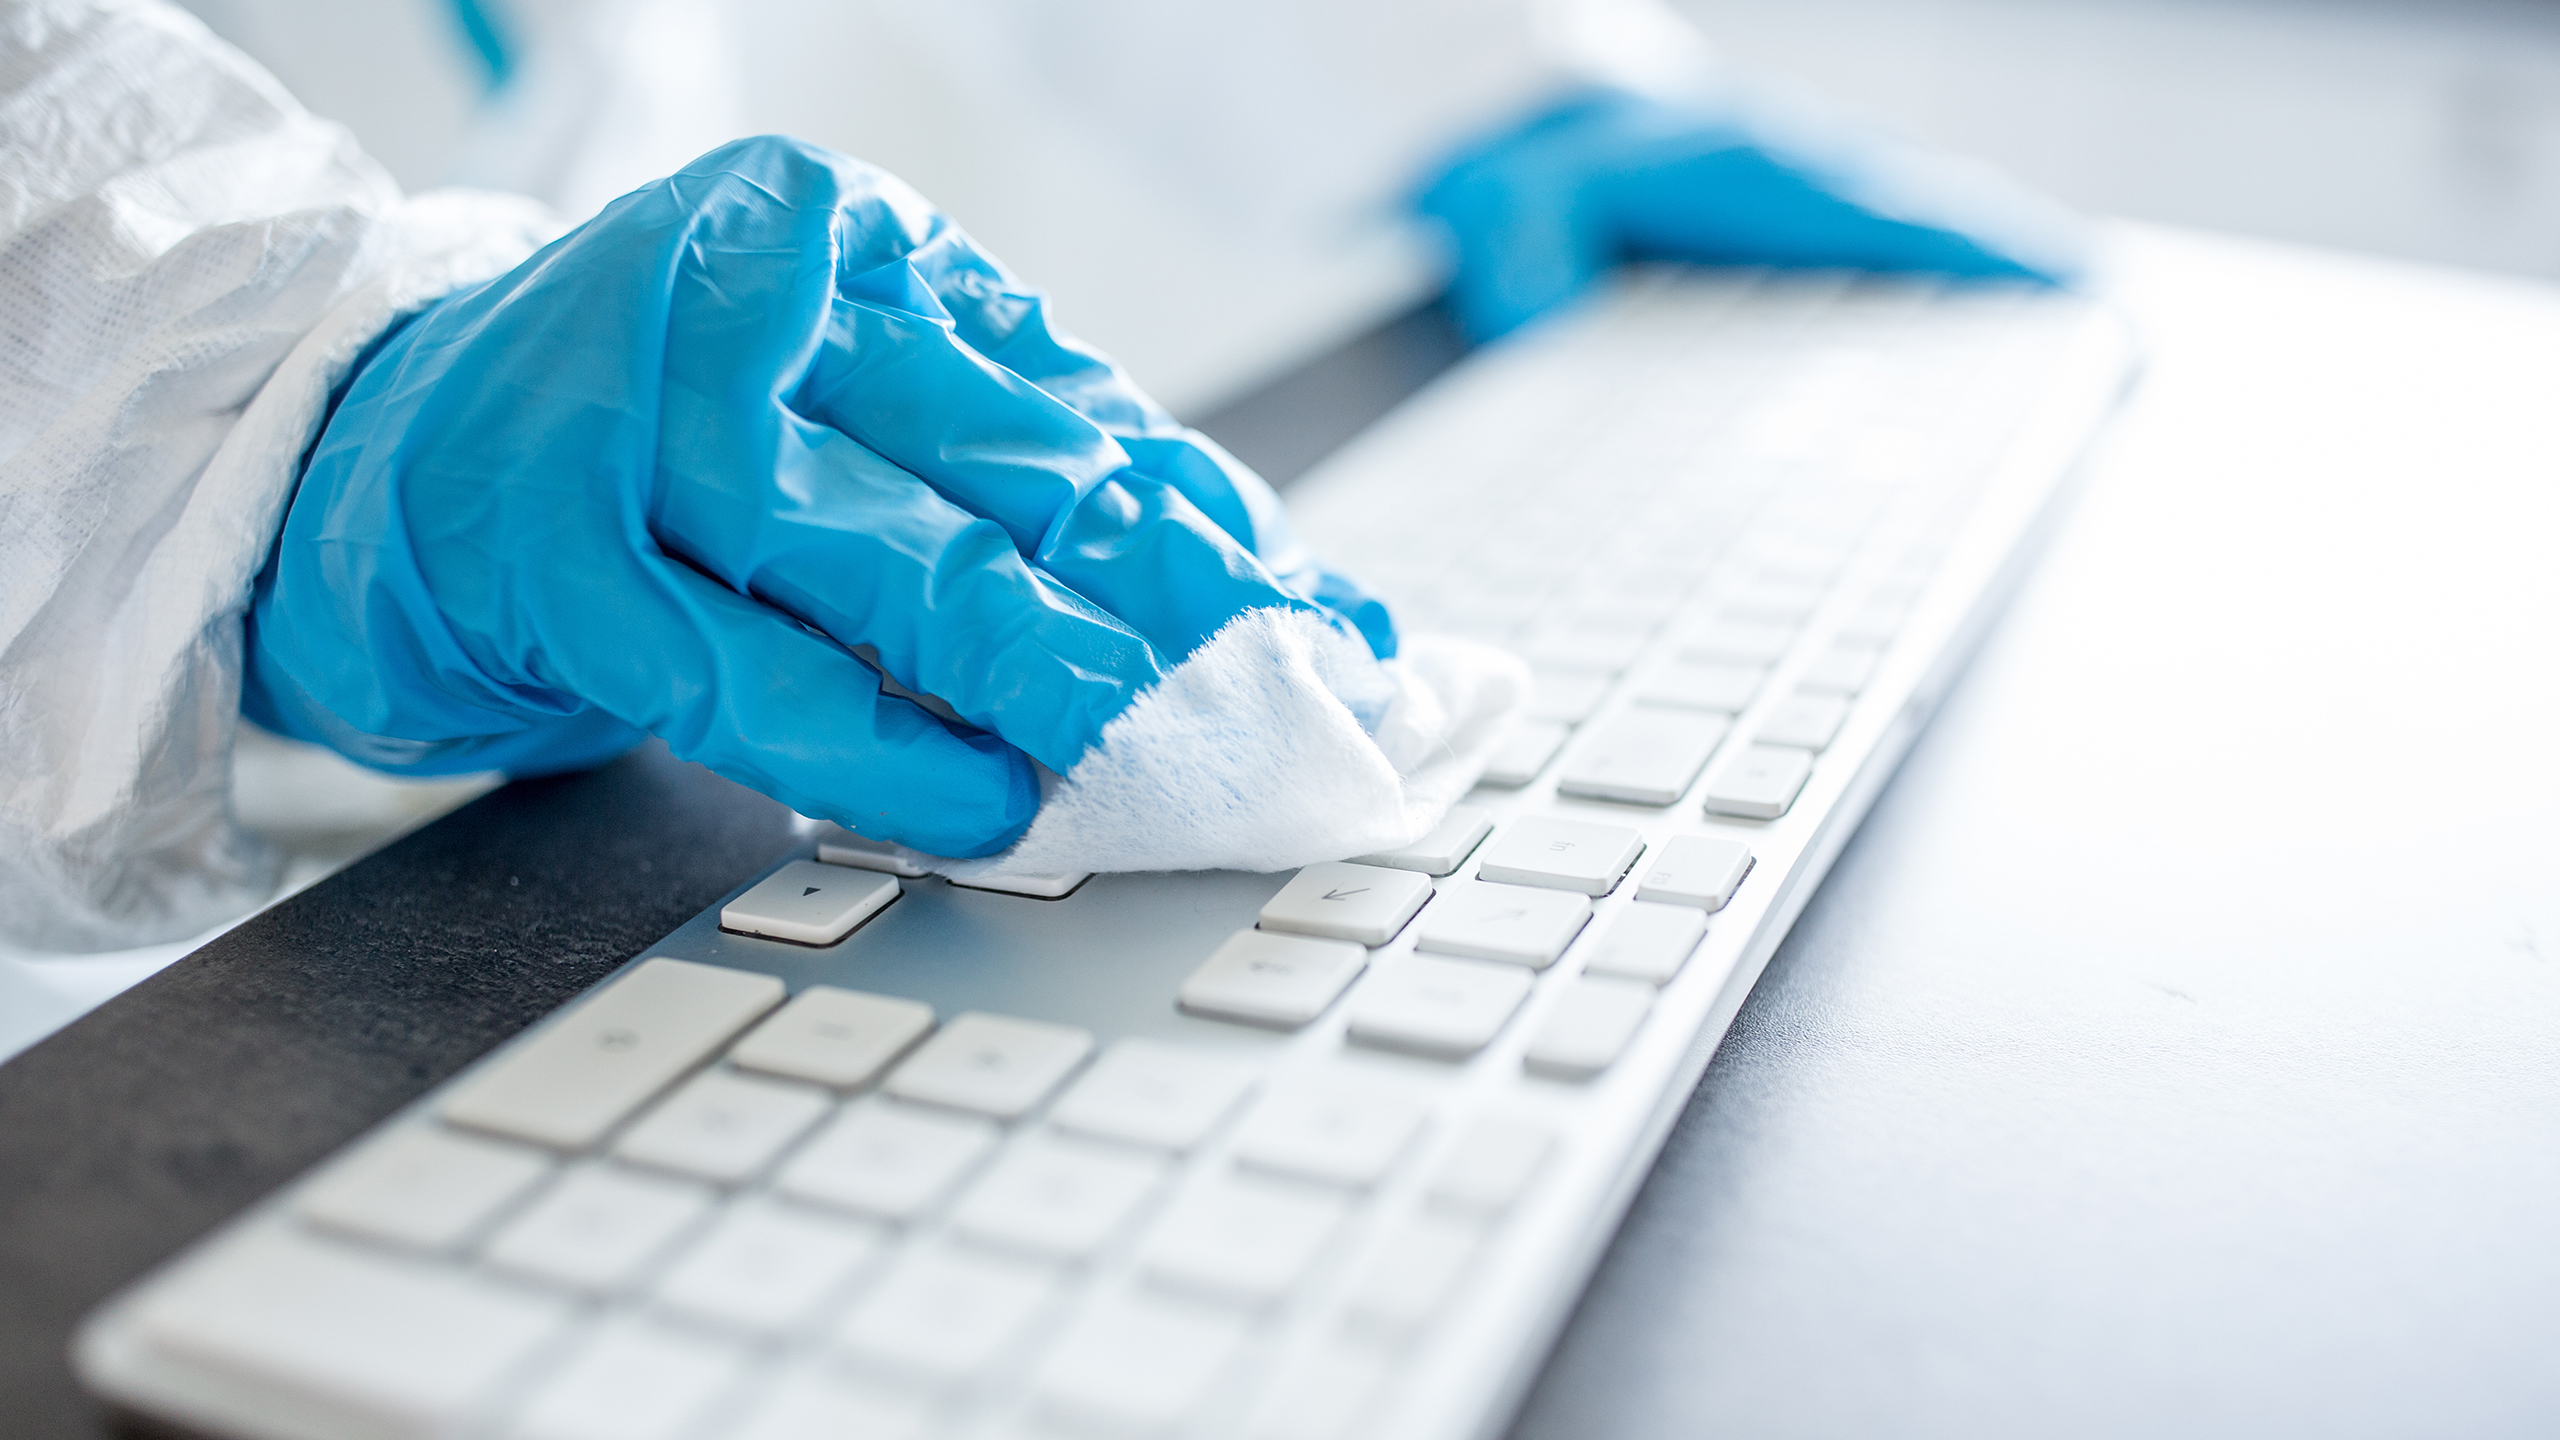 COVID-19 Services | IT Equipment Cleaning